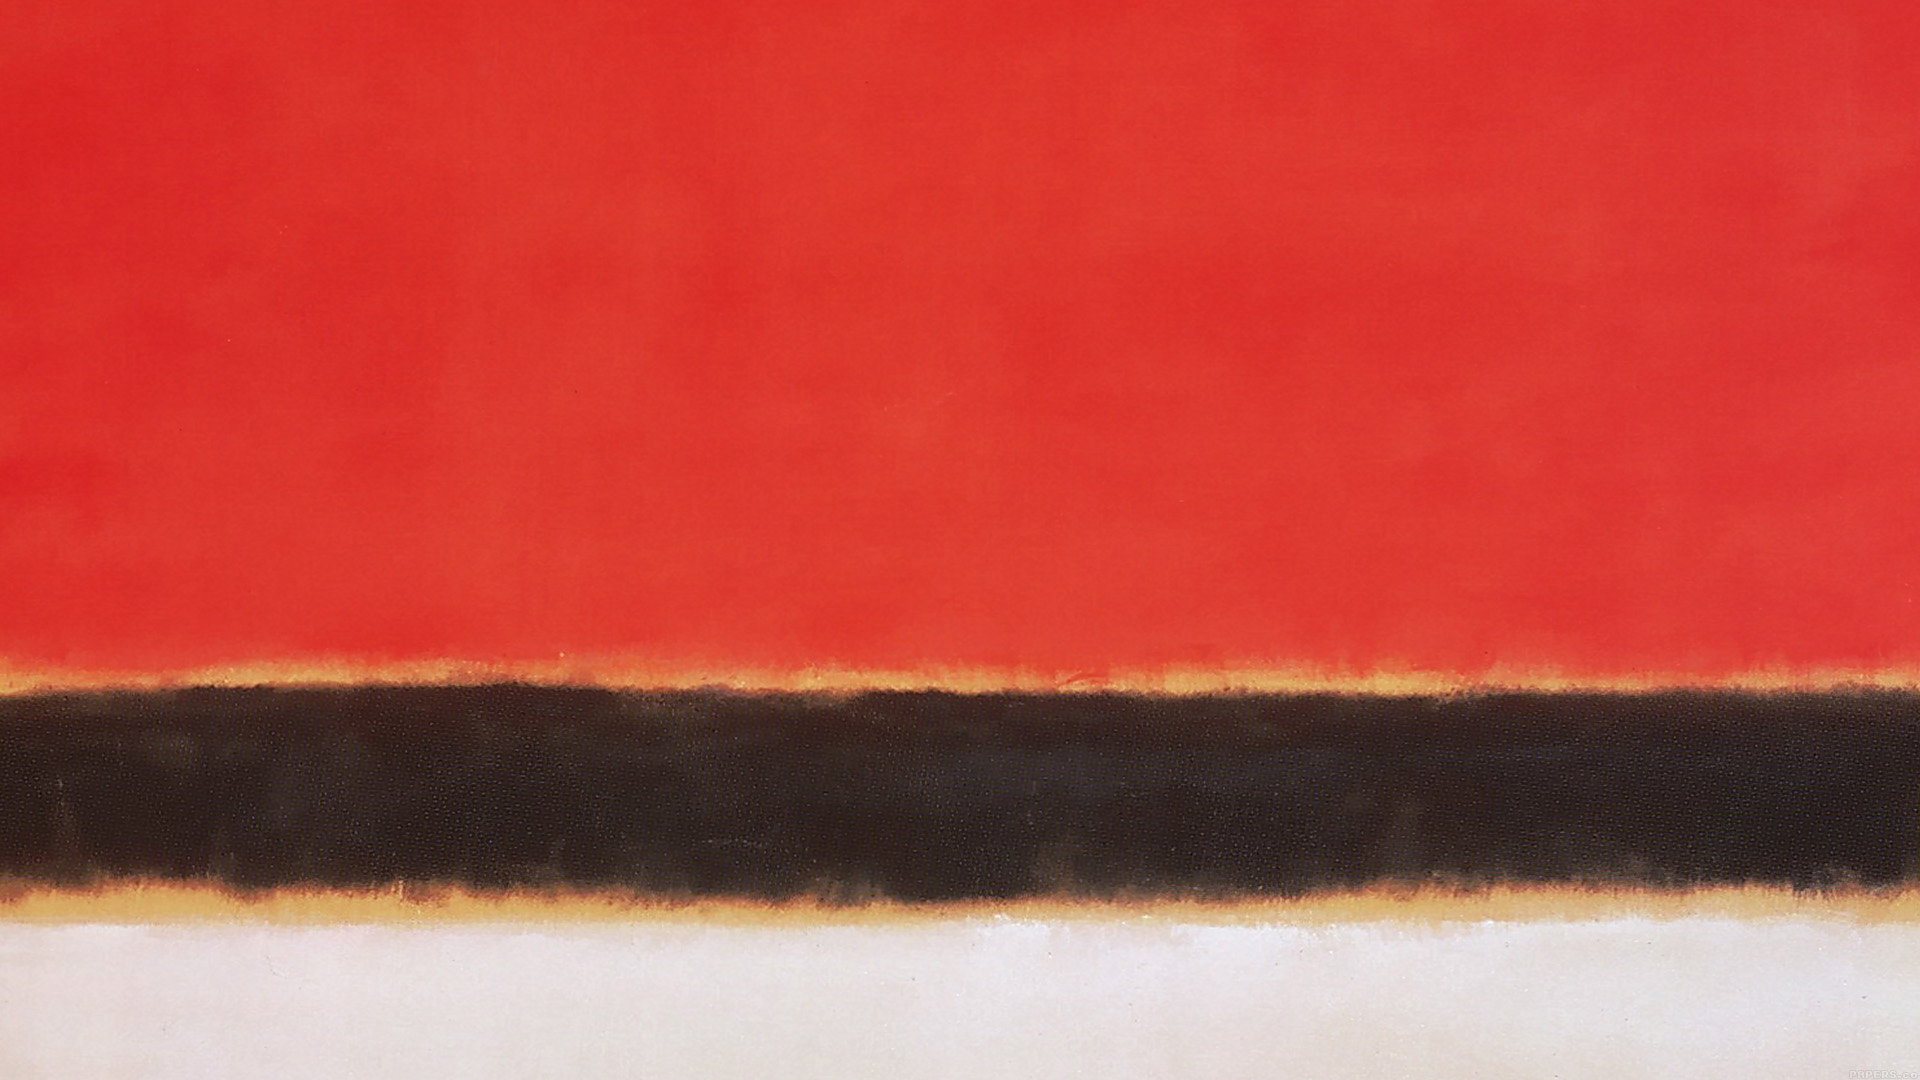 al68-red-white-rothko-mark-paint-style-art-classic - Papers.co